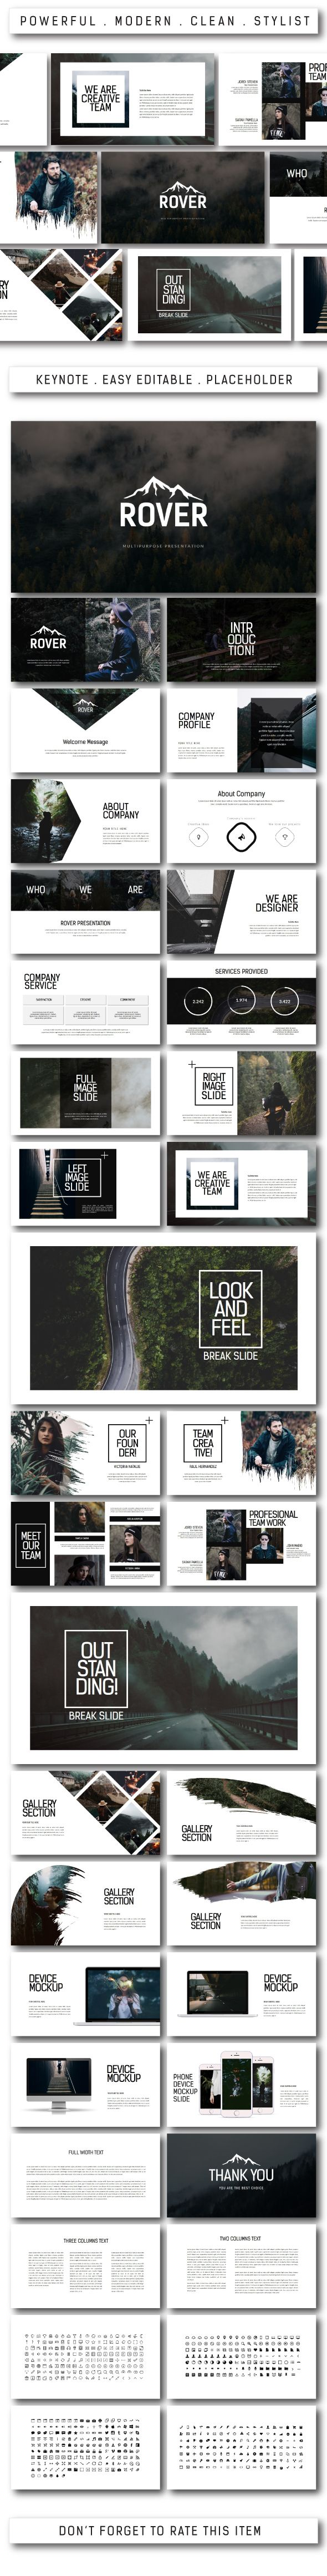 Rover Multipurpose Keynote Template - #Keynote Templates #Presentation Templates Download here: https://graphicriver.net/item/rover-multipurpose-keynote-template/20407208?ref=alena994